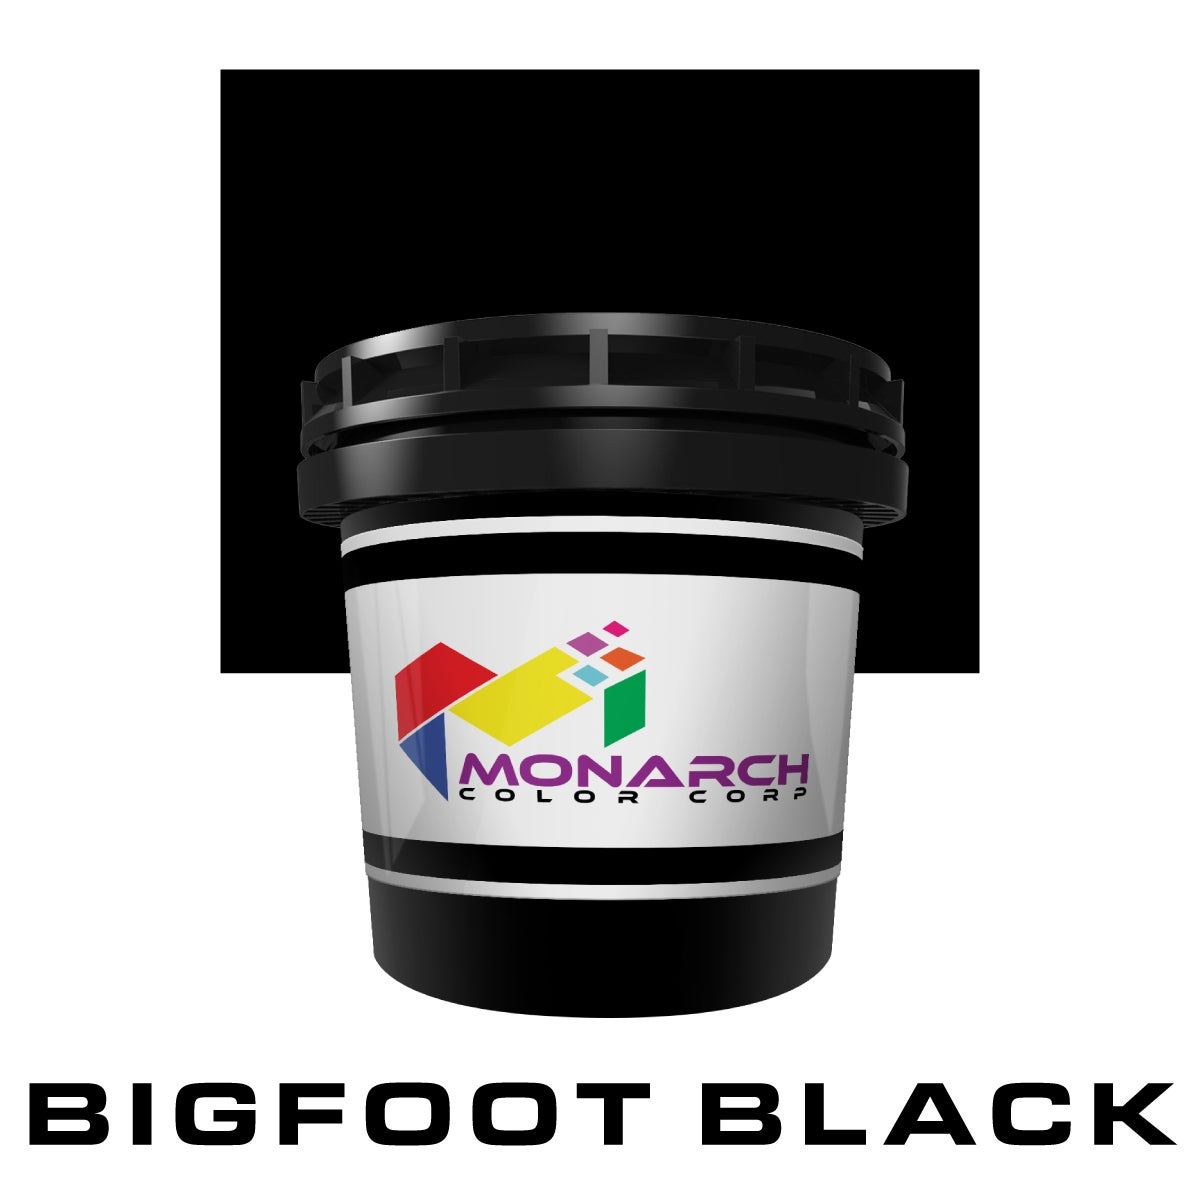 Image of MP7-0104 - LB BIGFOOT BLACK - Poly/Cotton Blend Plastisol Ink (by Monarch Color)